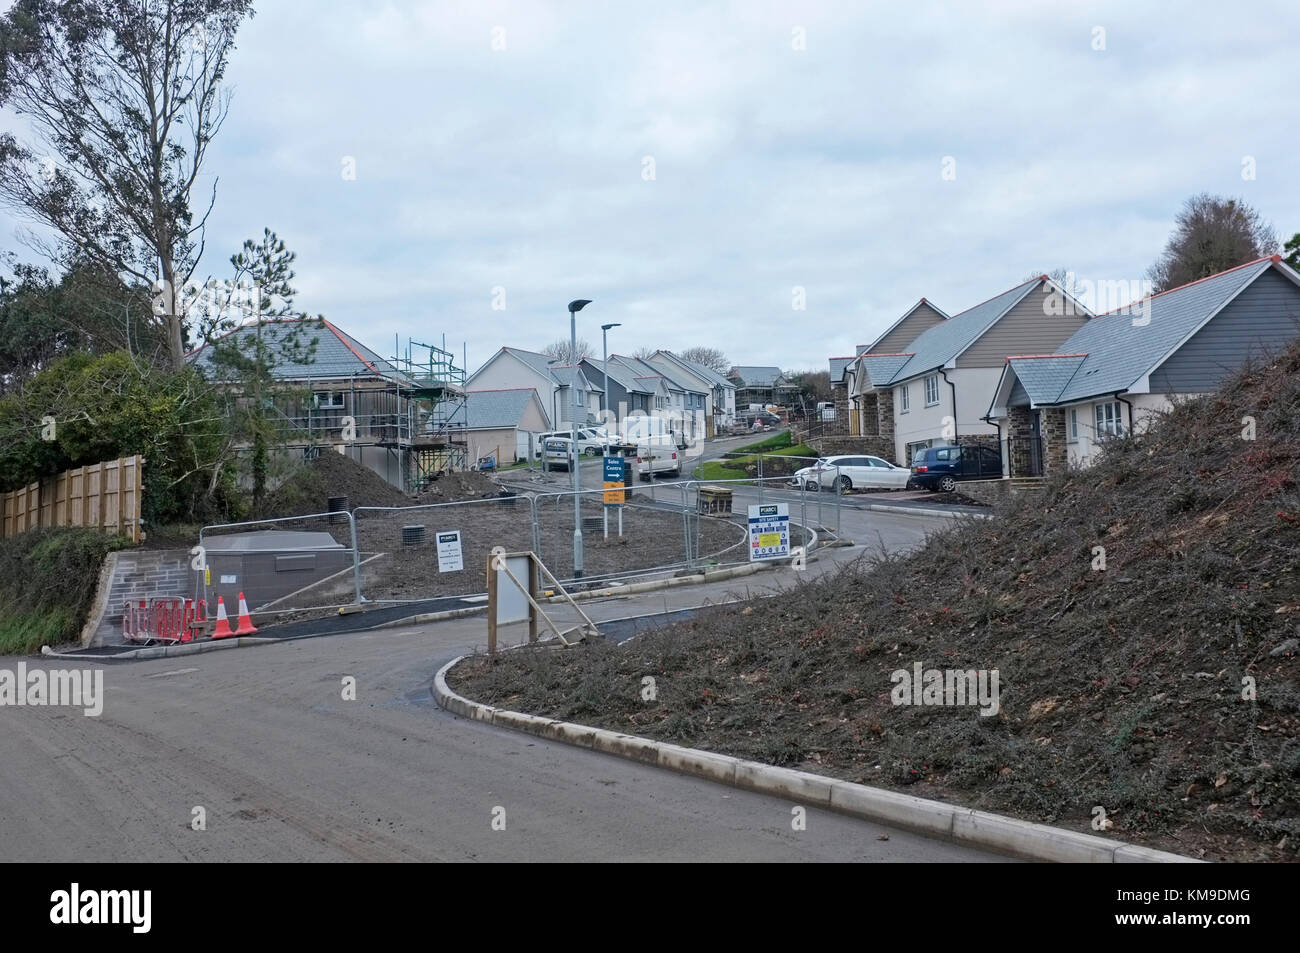 New build houses on the outskirts of Penryn, Cornwall. - Stock Image